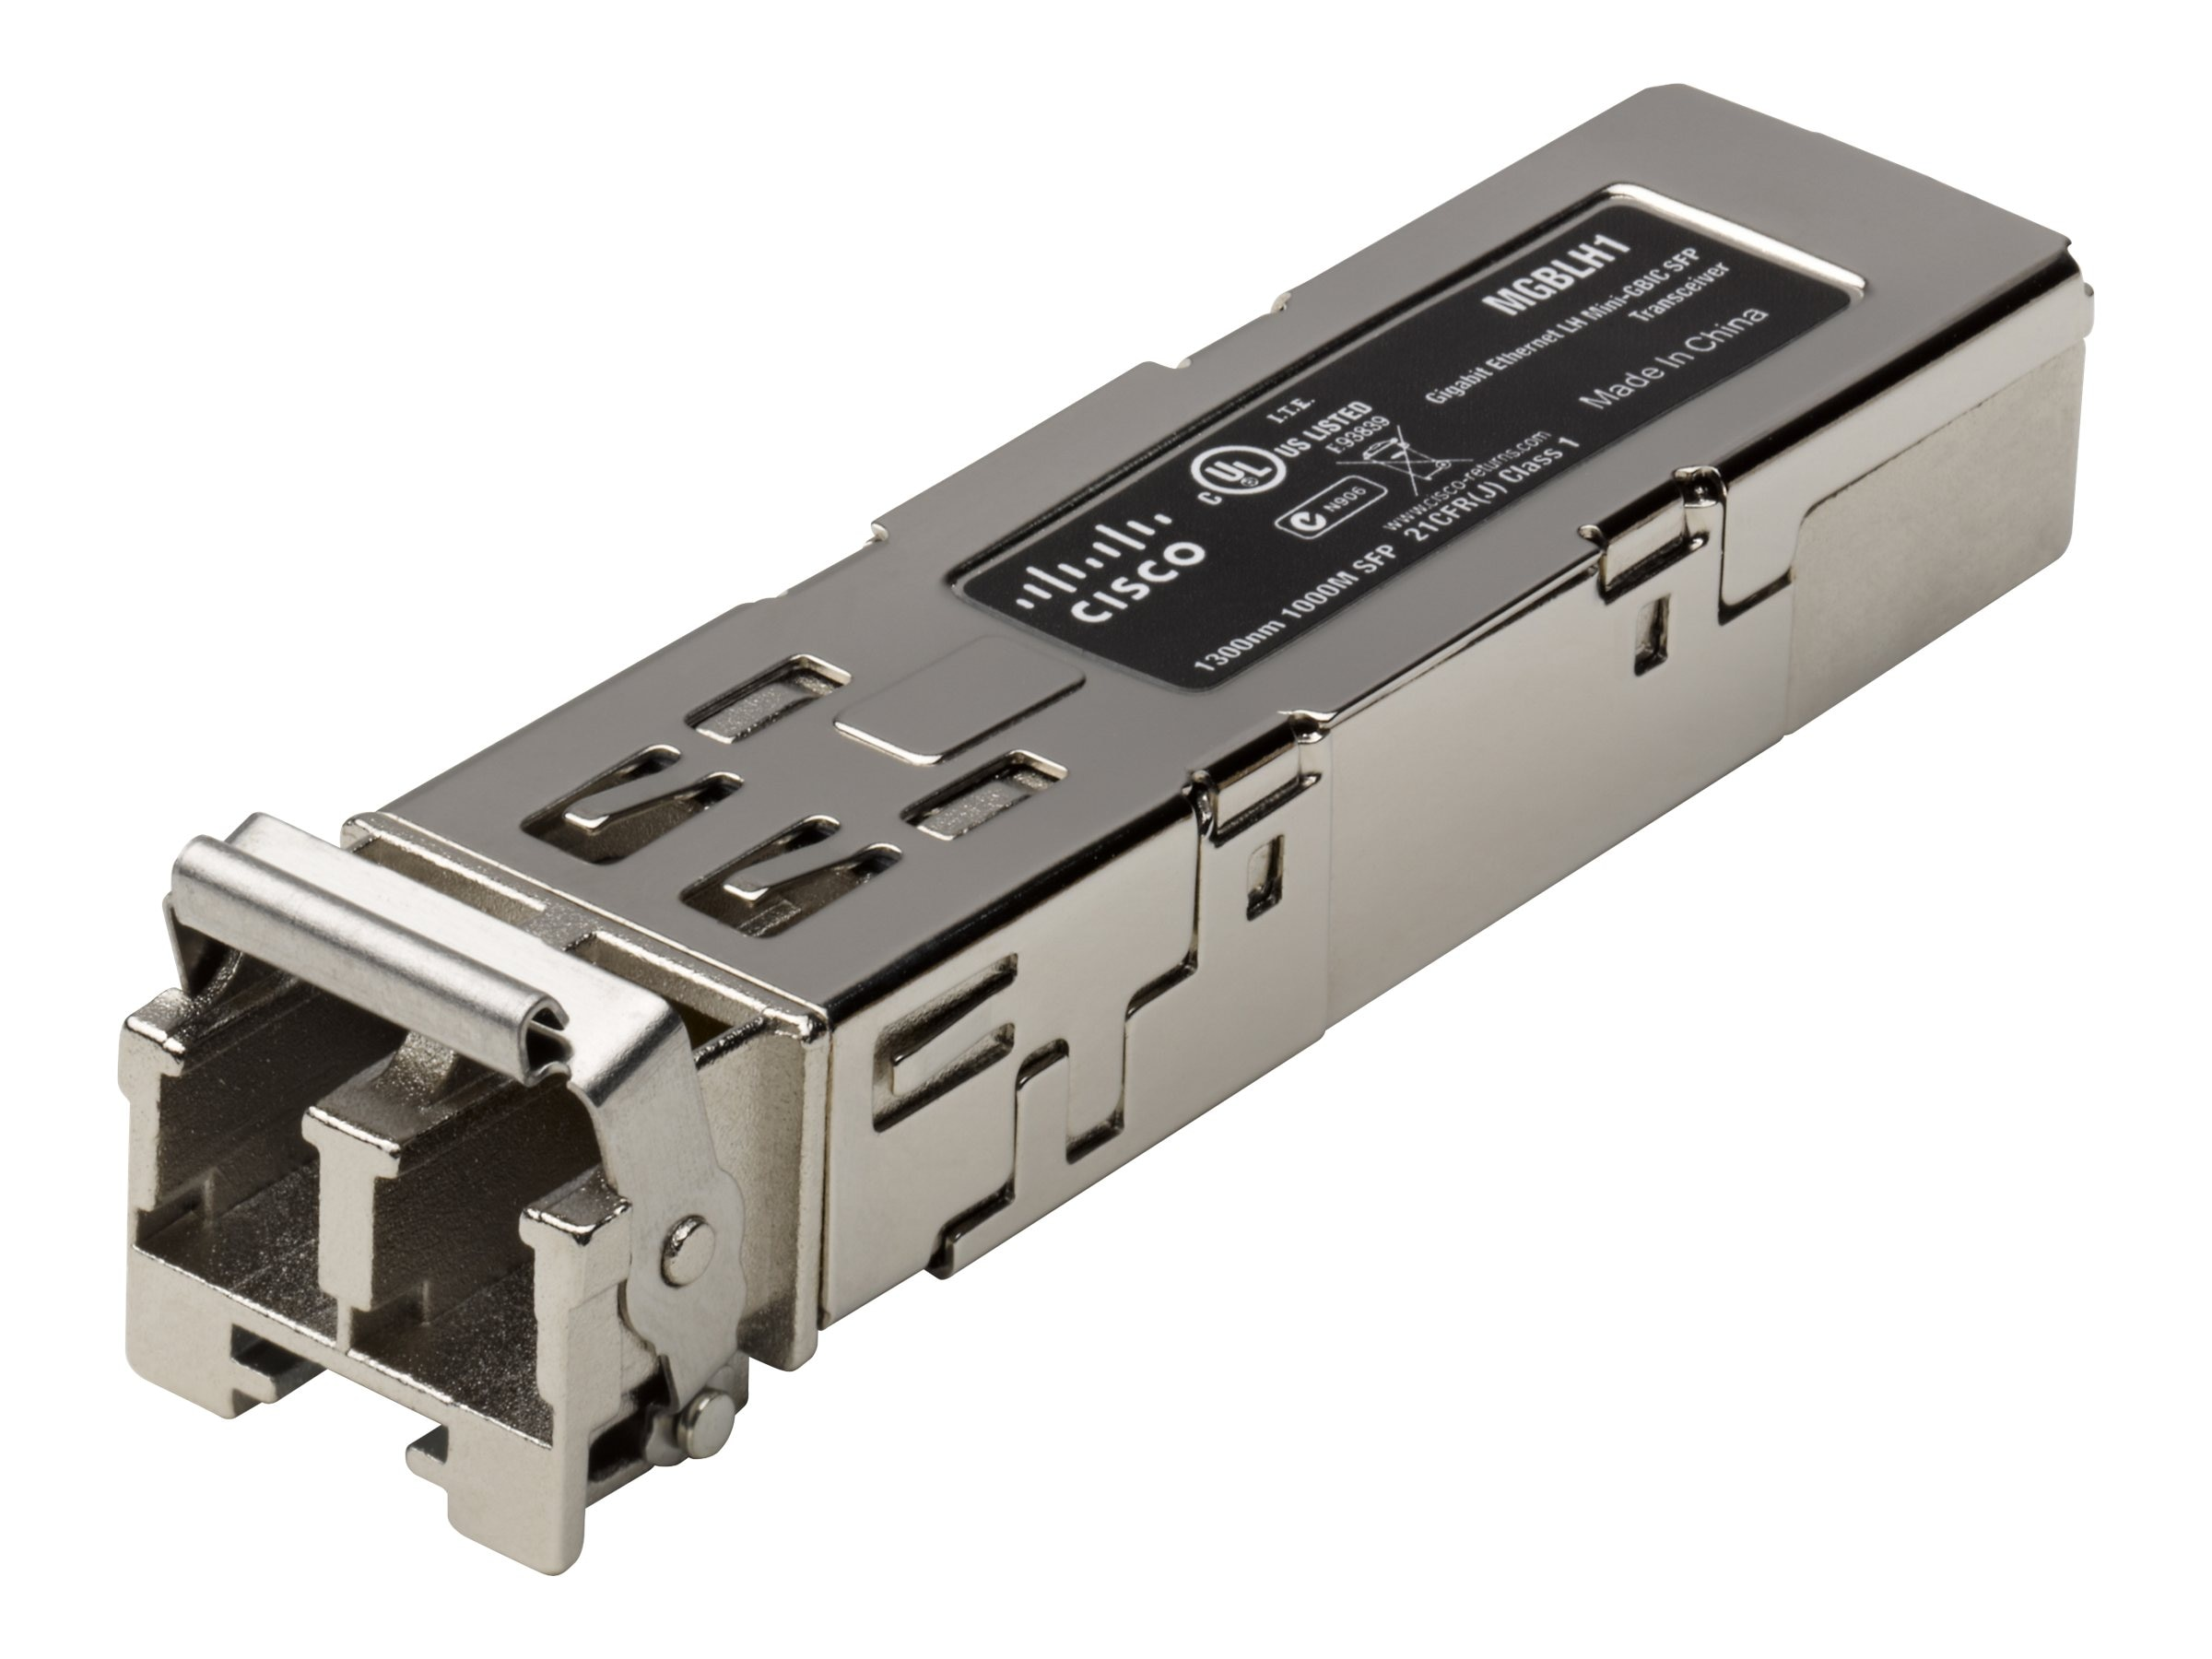 Cisco Gigabit Ethernet LH Mini-GBIC SFP Transceiver, MGBLH1, 5180240, Network Device Modules & Accessories